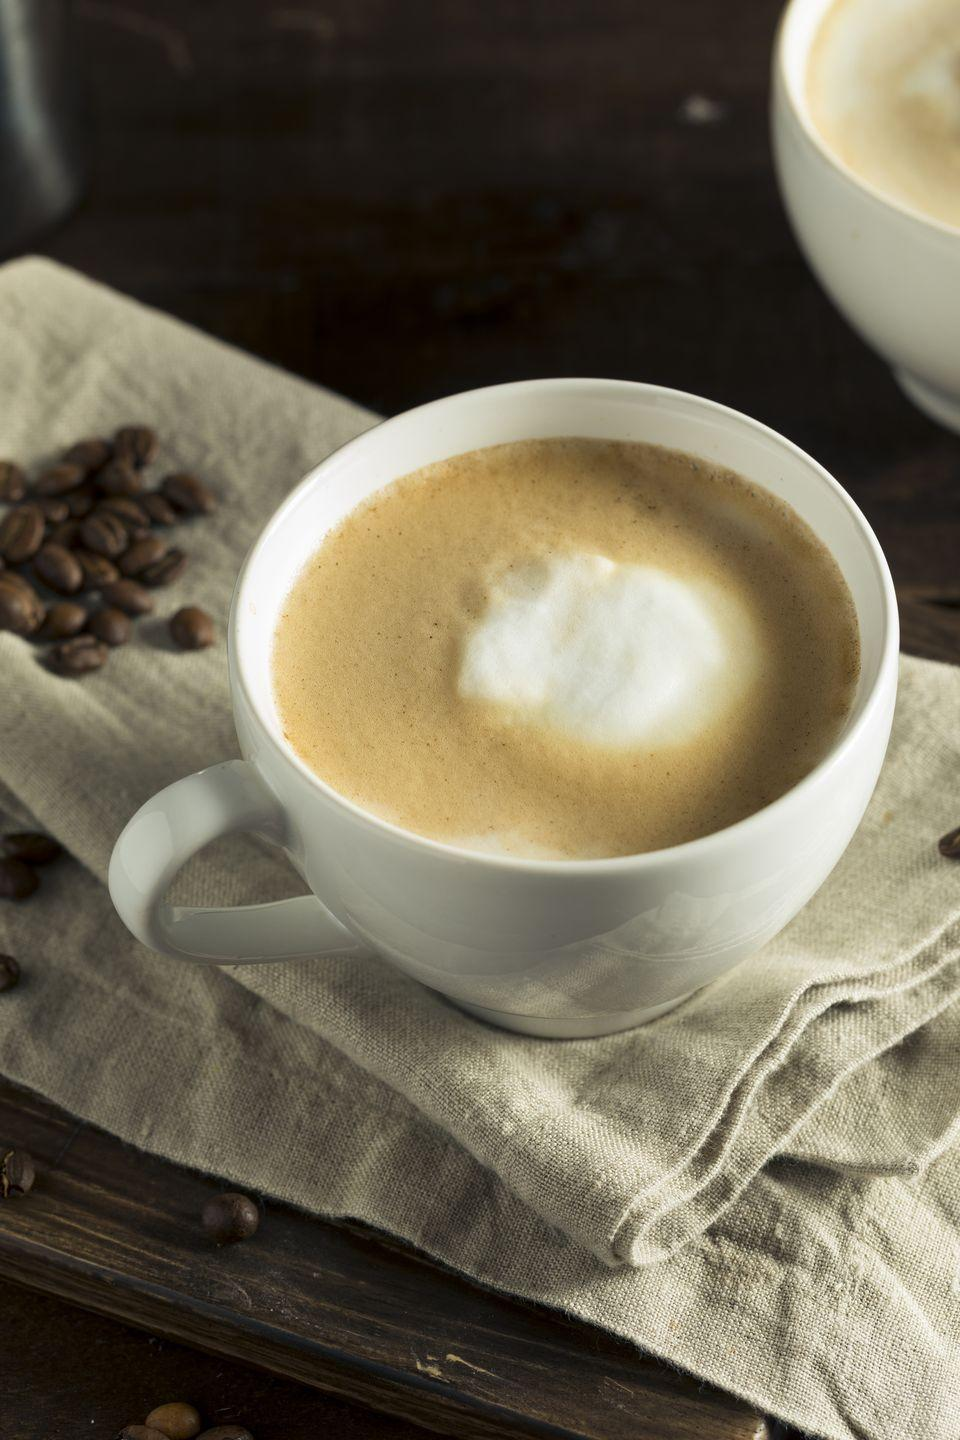 "<p>This espresso drink from Australia (or New Zealand, depending on who you ask) is very creamy in consistency thanks to how the microfoam is blended into the espresso. Although measurements vary, a typical flat white consists of a double shot of espresso with about 4 ounces of milk and little to no foam, making it smaller than a latte.<br></p><p><strong>Pro tip</strong>: Flat whites are great for those who like lattes but don't want as much milk. </p><p><em><a href=""https://www.roastycoffee.com/flat-white/"" rel=""nofollow noopener"" target=""_blank"" data-ylk=""slk:Get the recipe for Flat White from Roasty Coffee »"" class=""link rapid-noclick-resp"">Get the recipe for Flat White from Roasty Coffee » </a></em></p>"